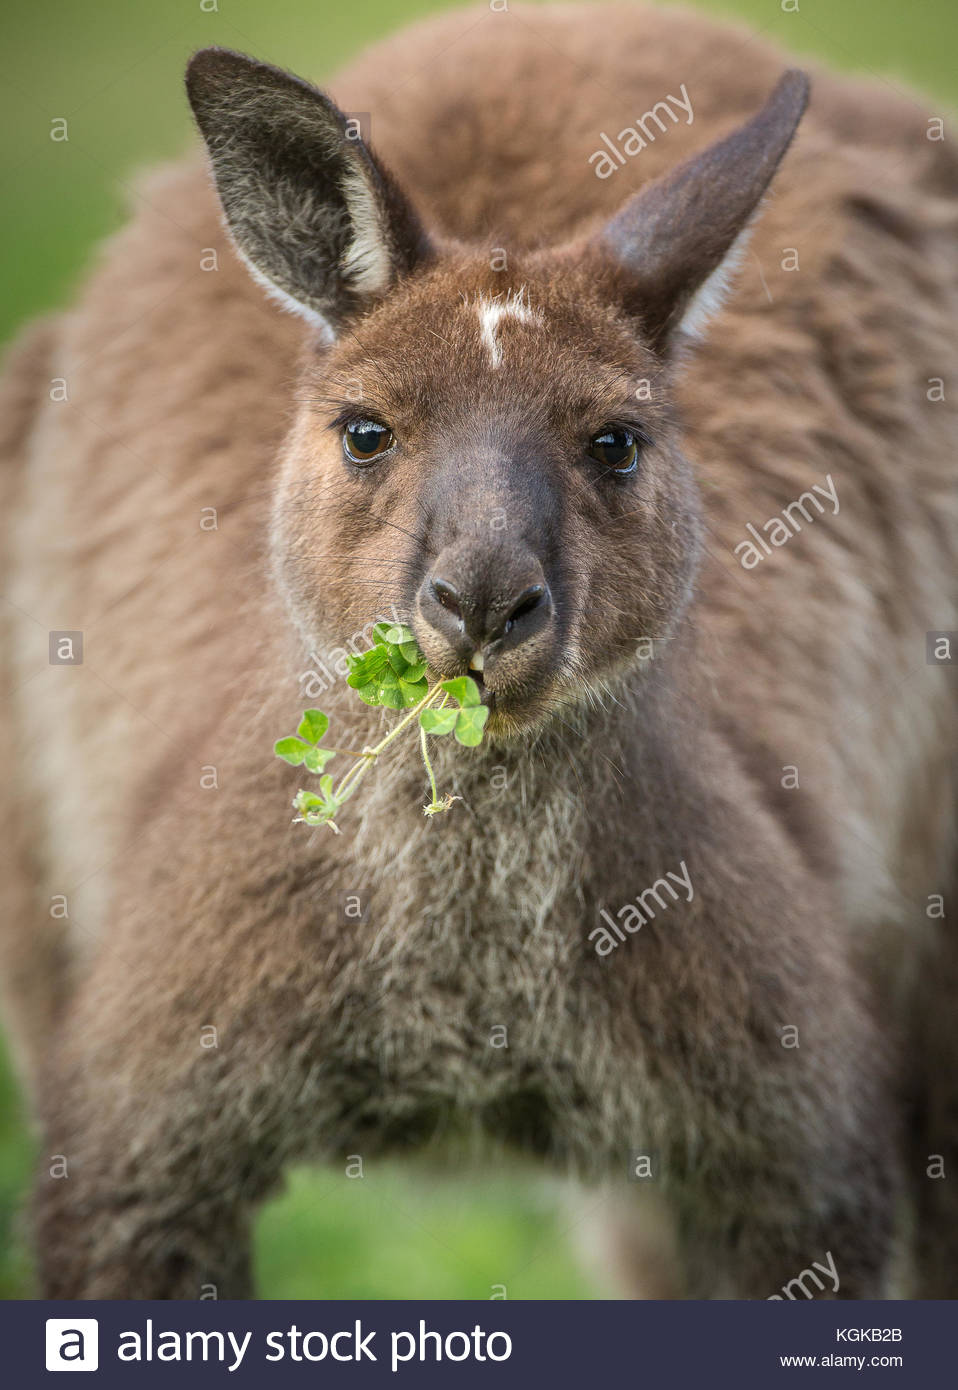 Portrait of a western grey kangaroo, Macropus fuliginosus, with grass in its mouth. - Stock Image